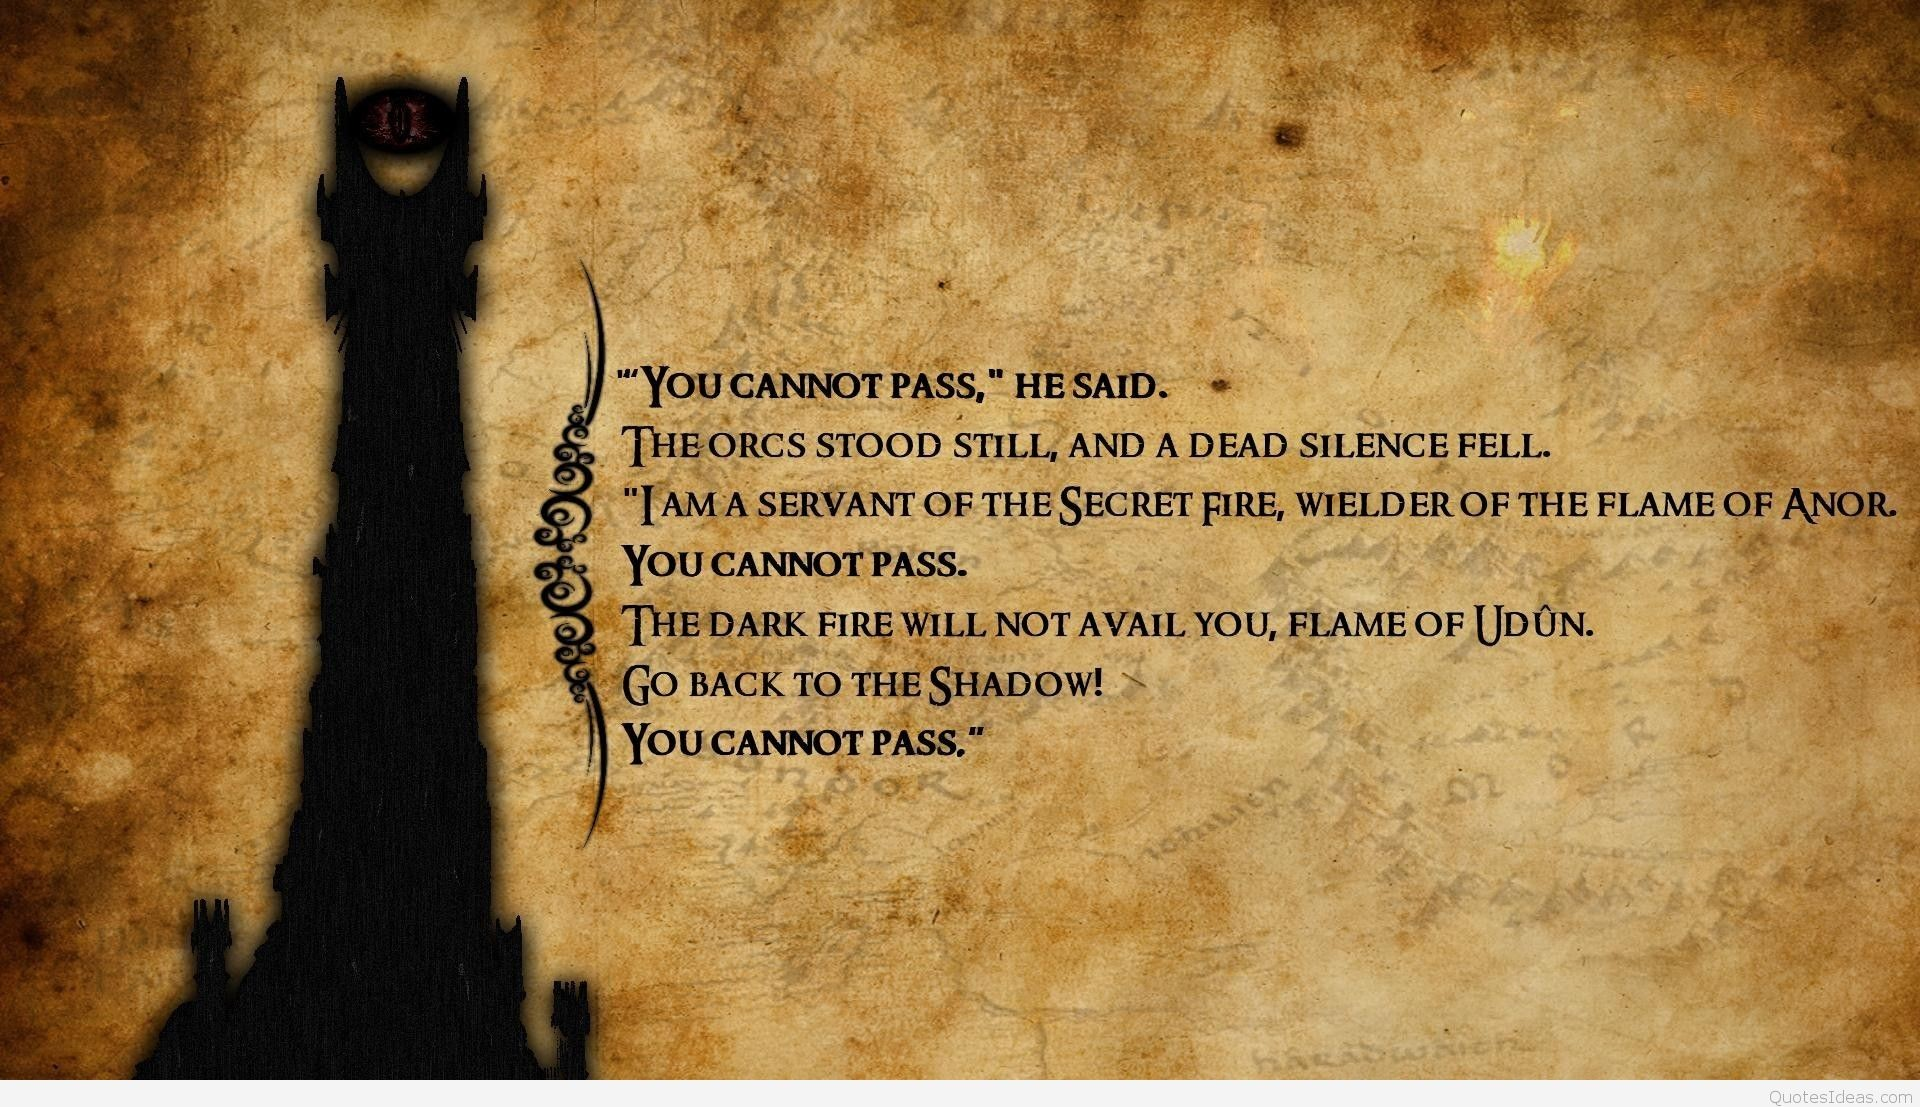 Lord Of The Rings Quotes Wallpapers Picture For Desktop Wallpaper 1920 x  1107 px 638.65 KB